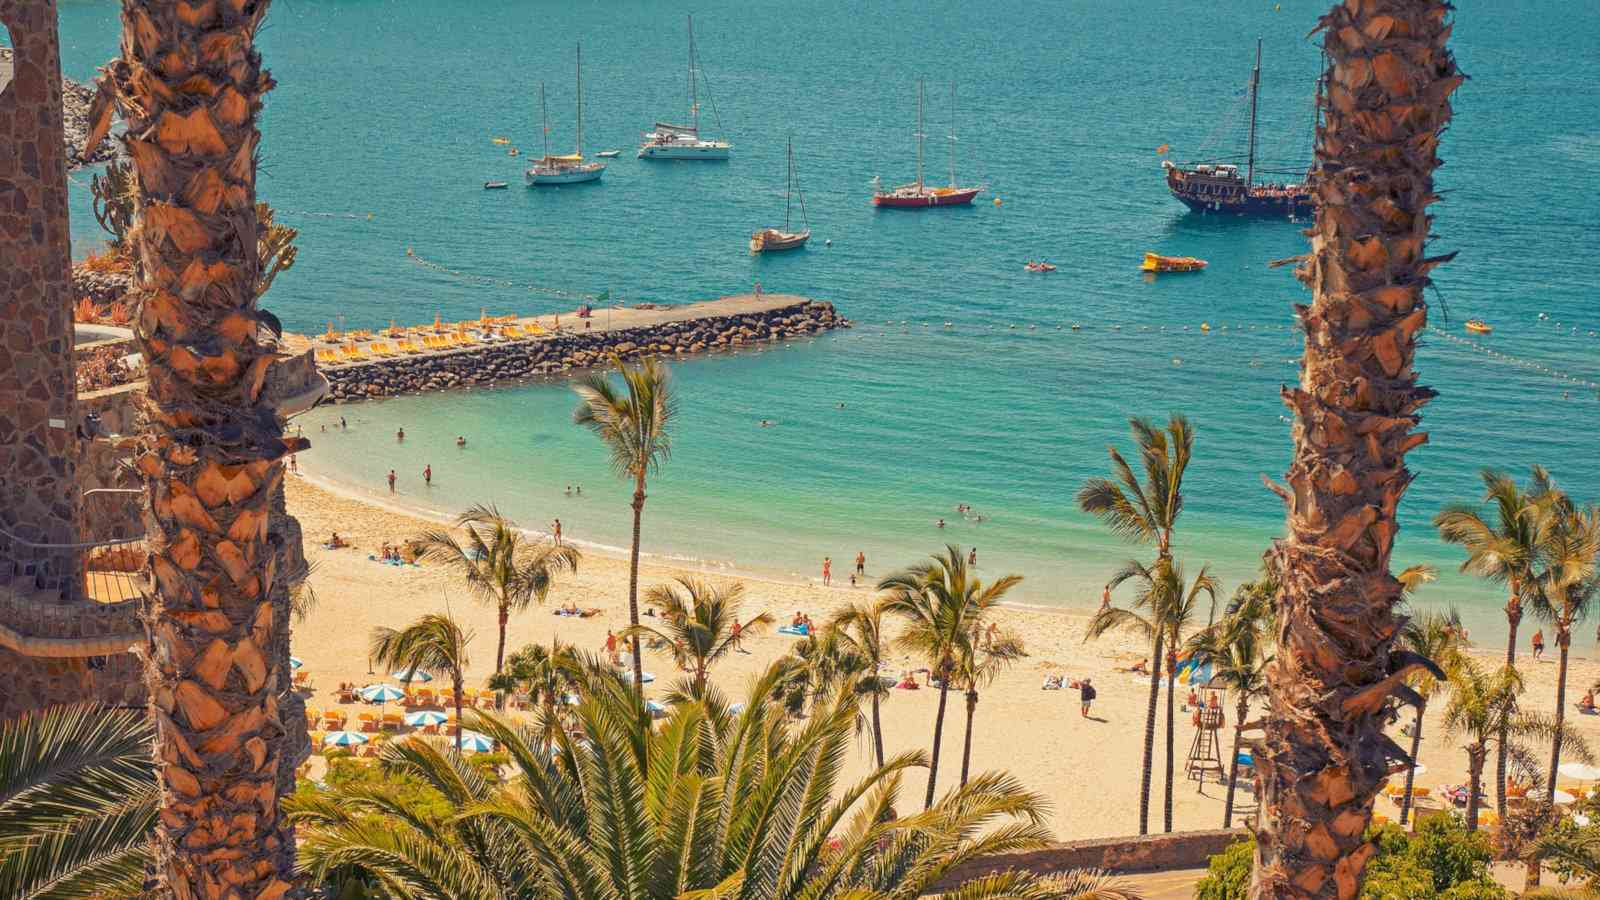 Gran Canaria is a stunning destination with lots to do whether you like to get active or just laze on a beach